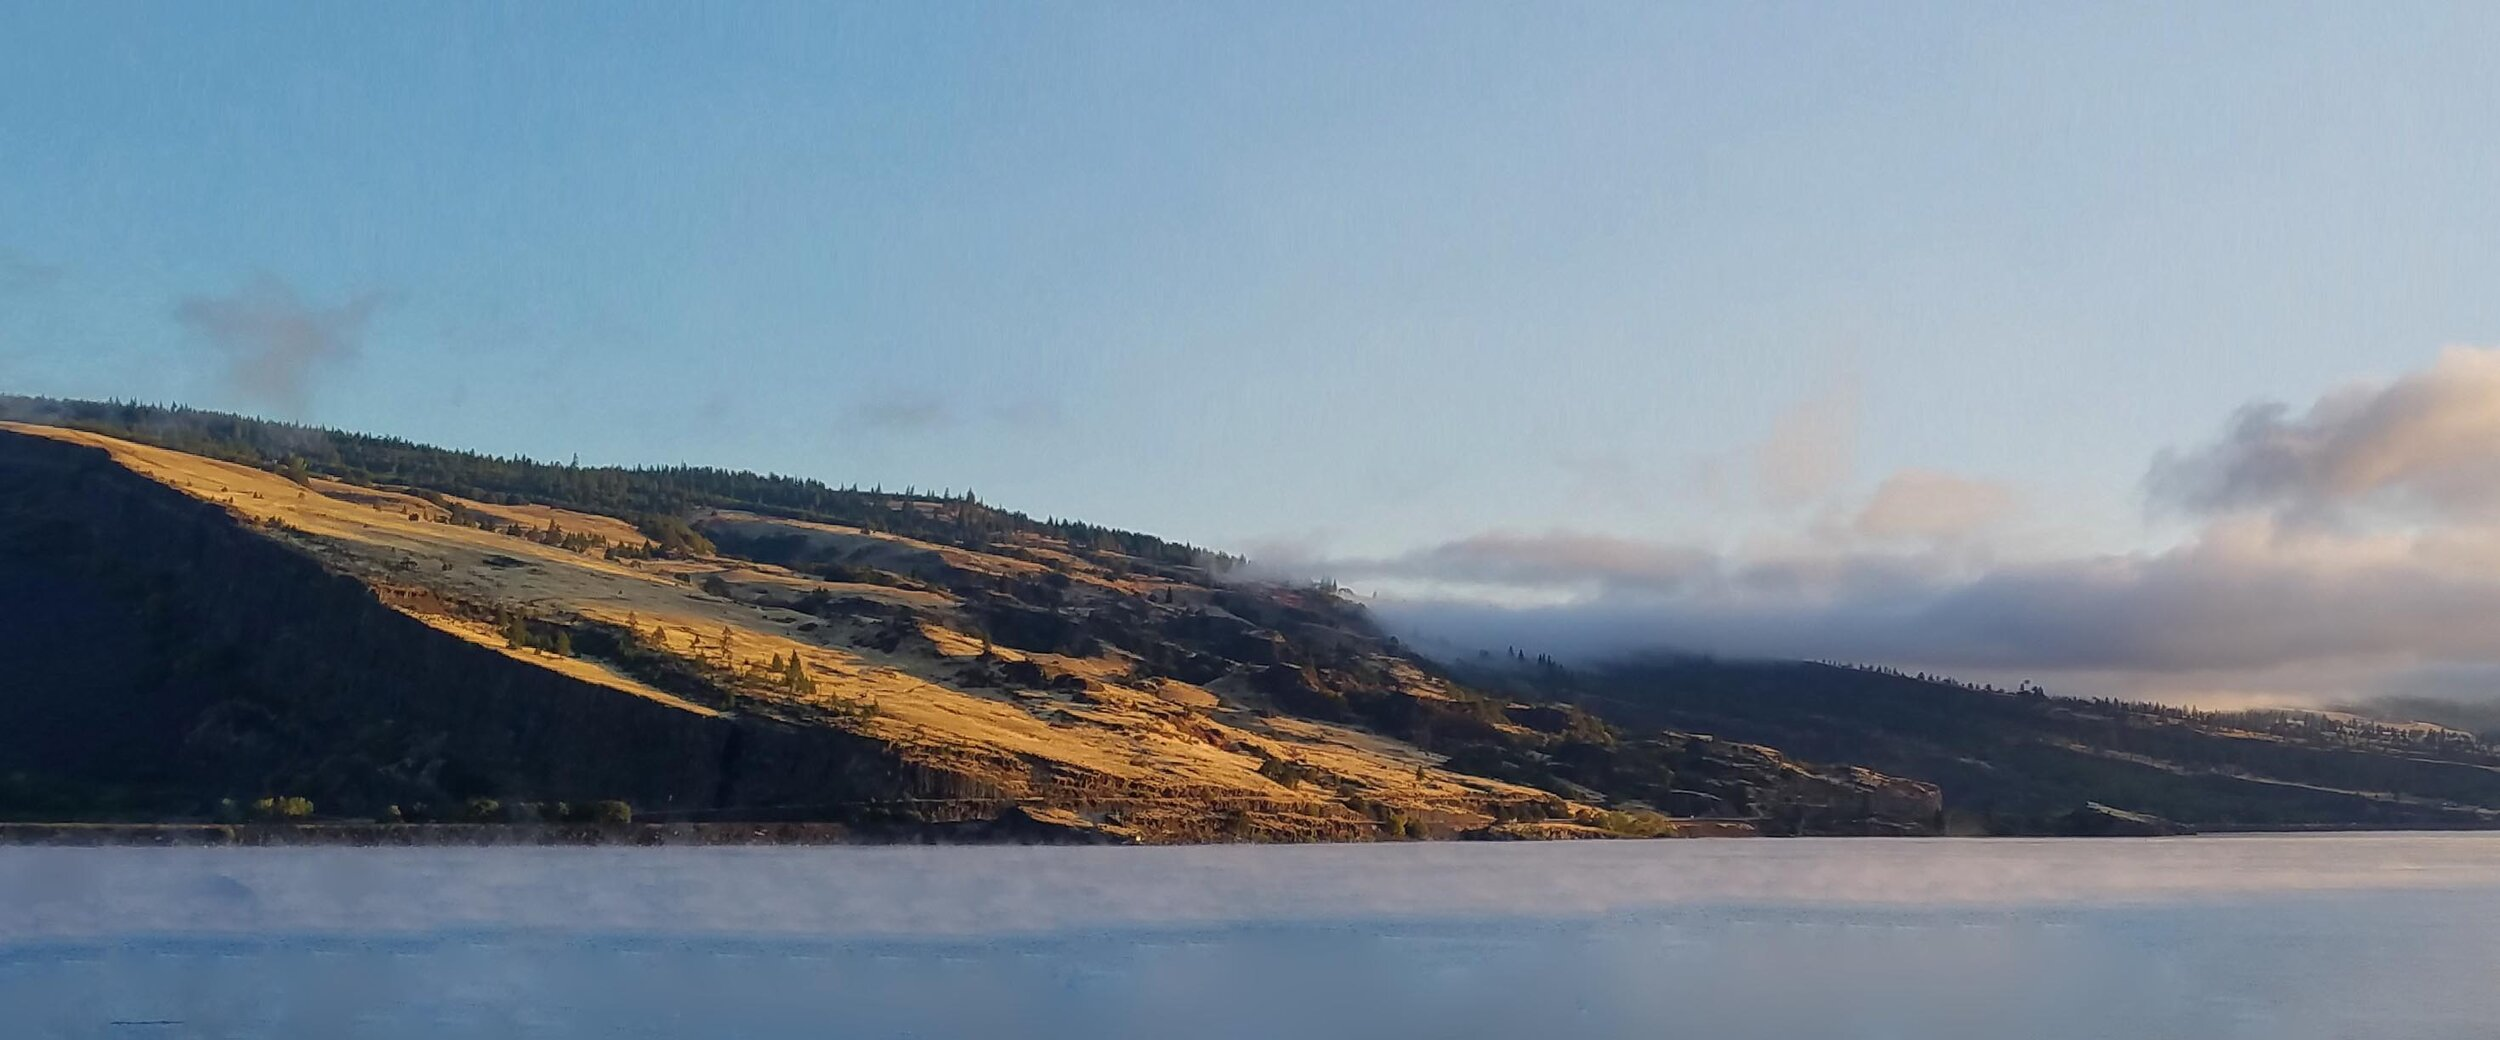 Coyote Wall Syncline across the Columbia River in Washington, from Mosier. Photo: (c) Barb Ayers, DogDiary.org